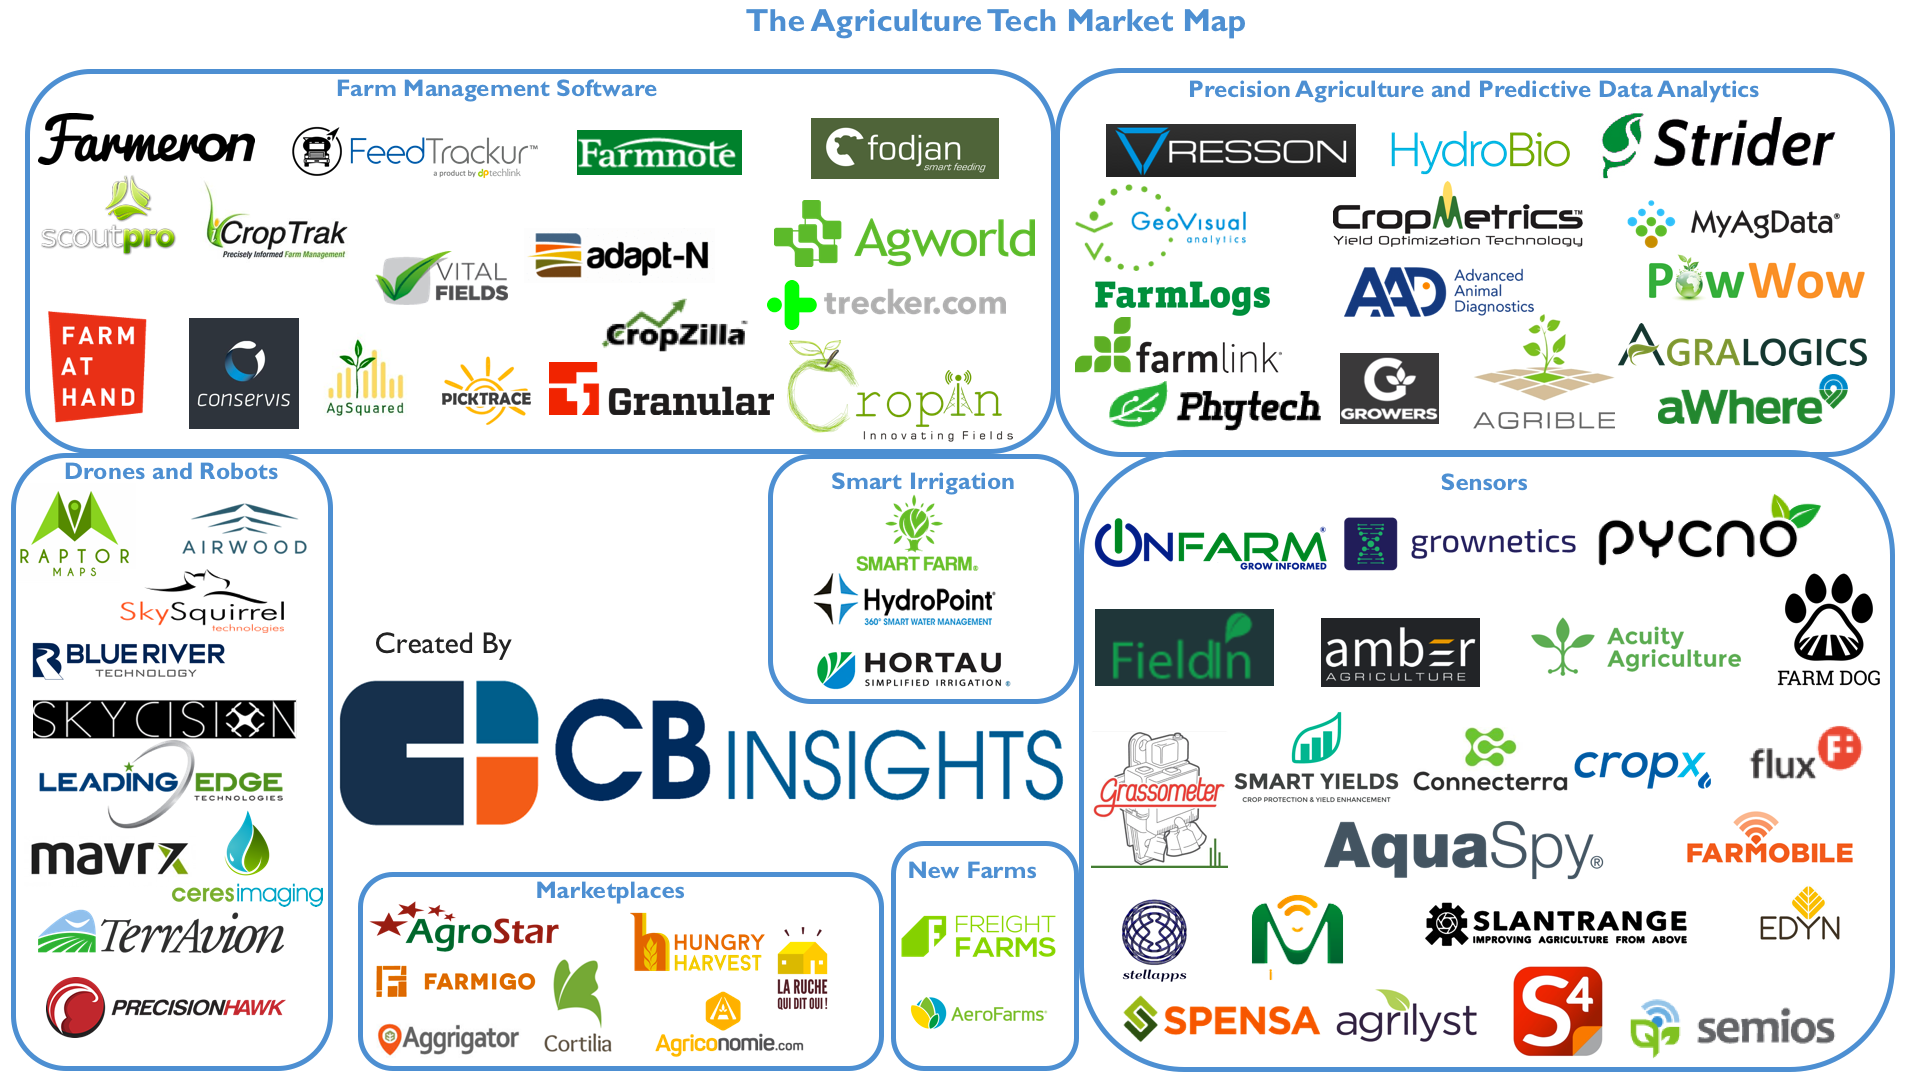 77 Agtech Startups Powering The Future Of Farming And